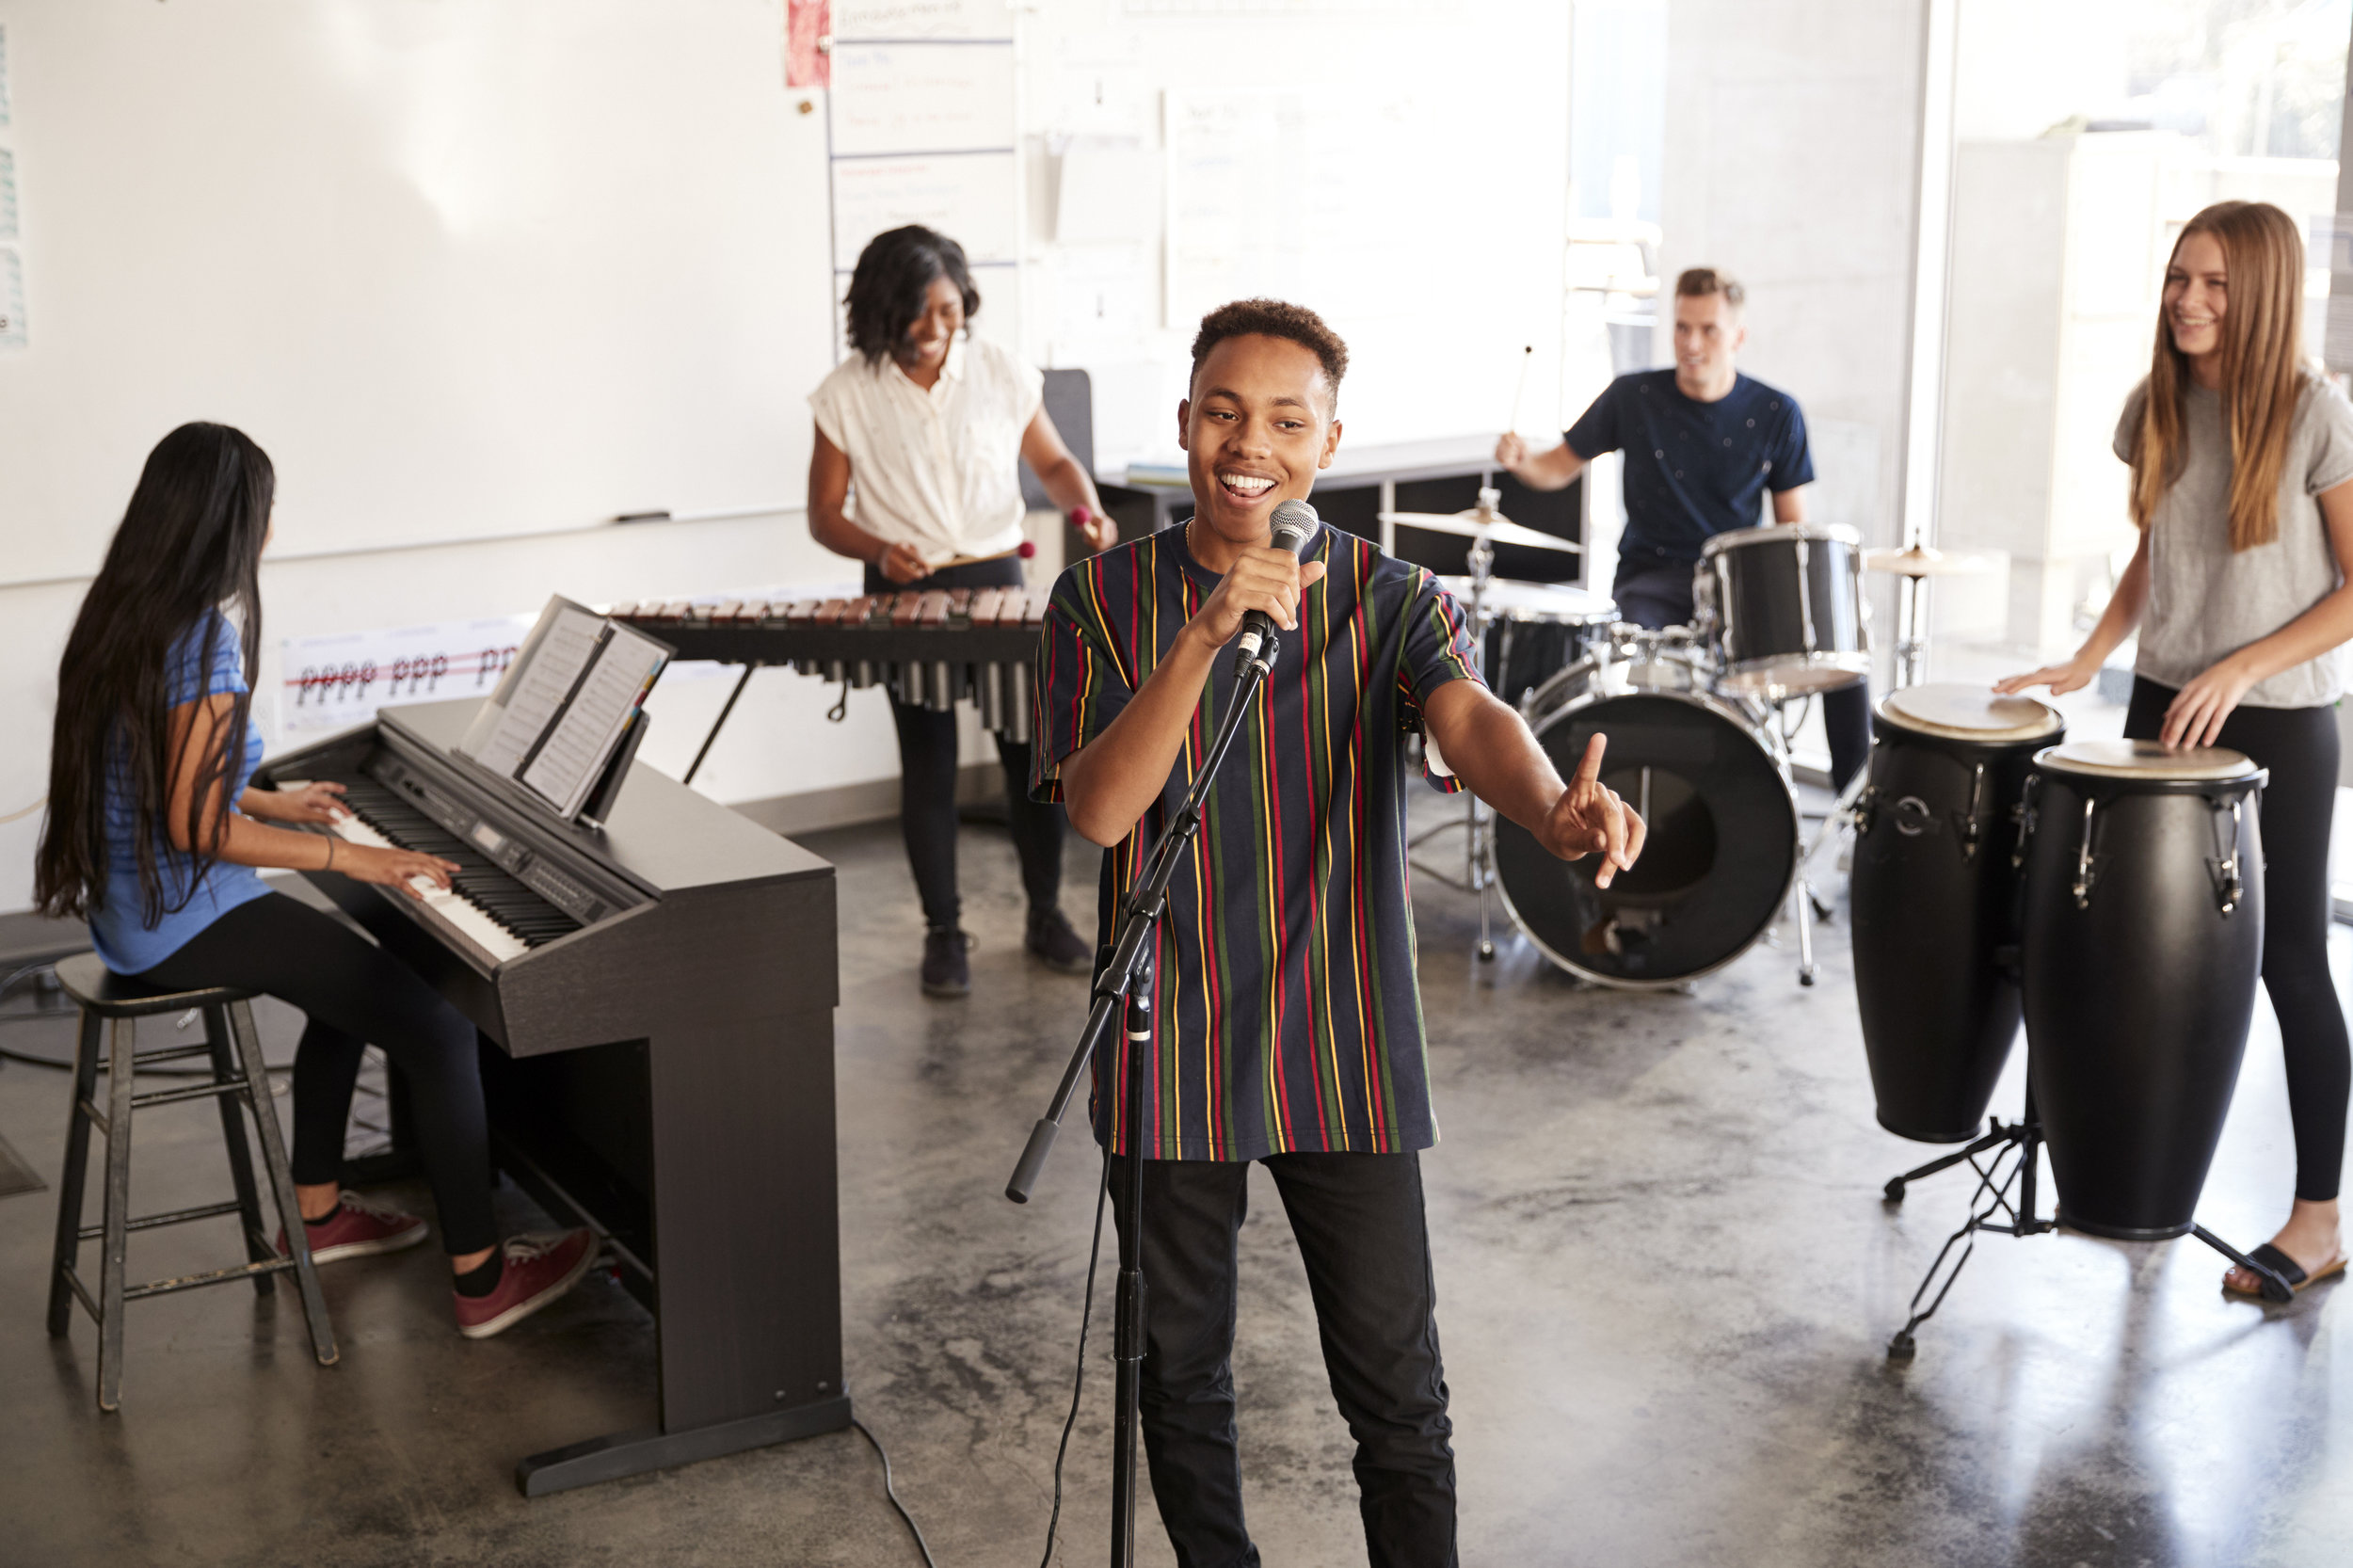 Why your church should include children in the music team - Why serving in a hands-on way through music has the power to move young people from consumers to an active servant within the body of Christ